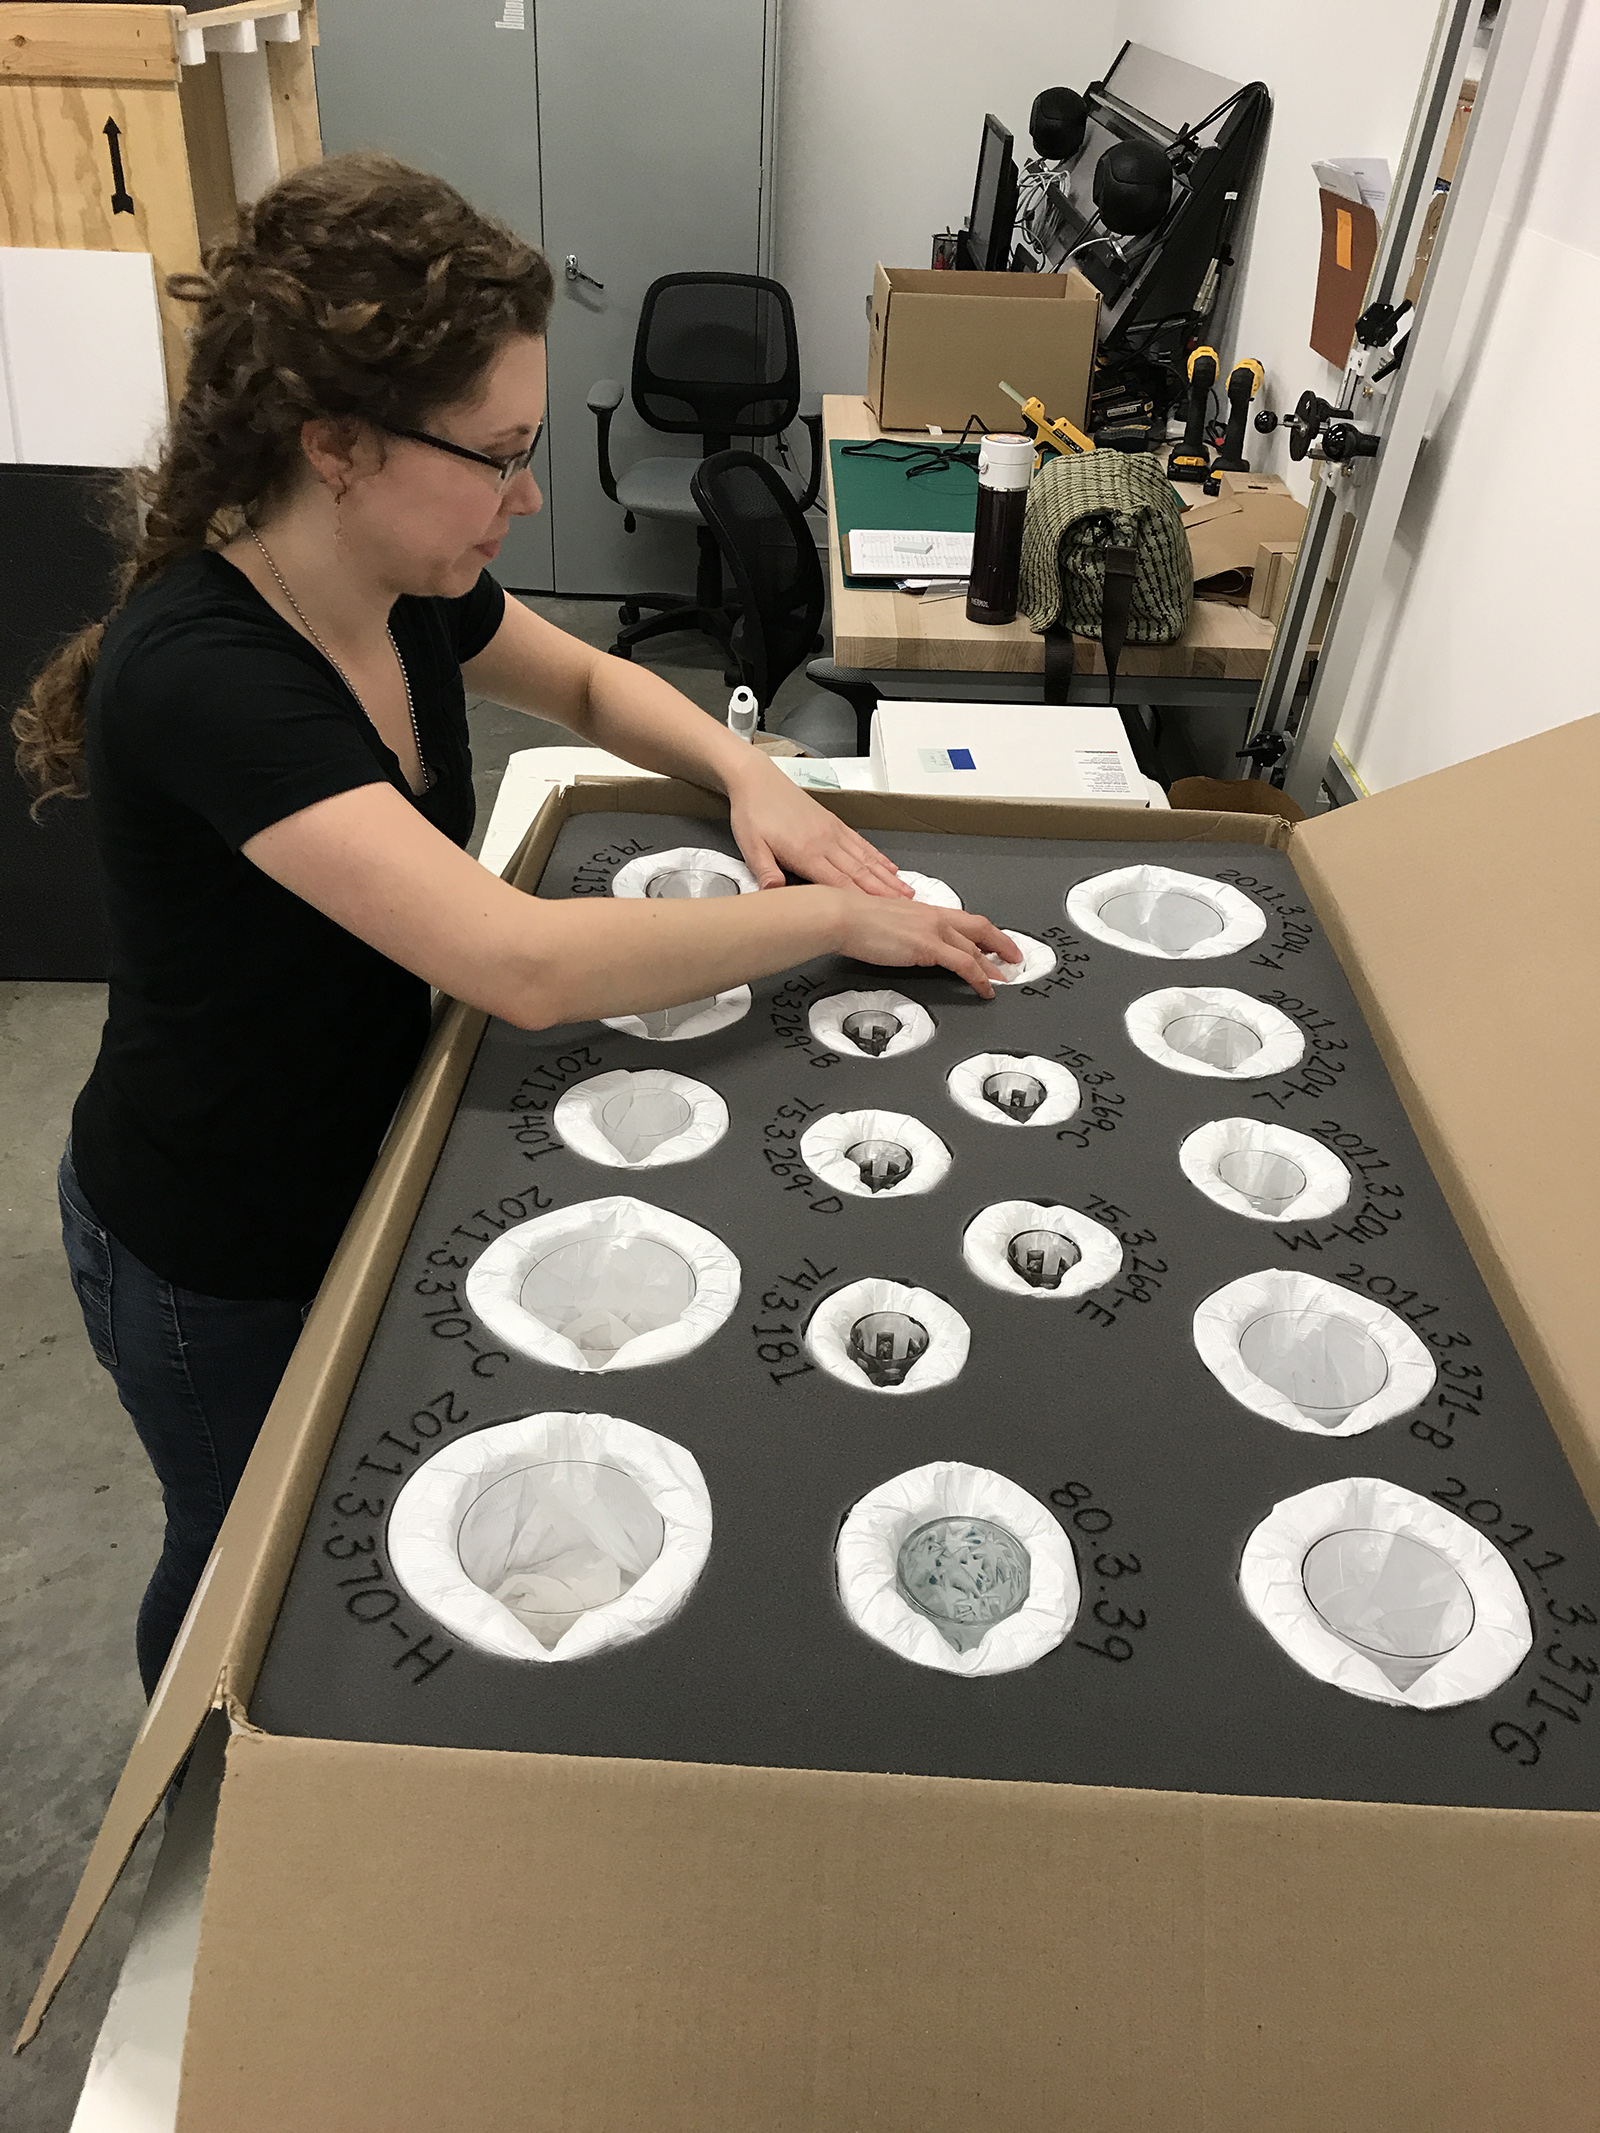 Lindsay Nikisher, Preparator, makes sure all objects fit snugly in their correct place.